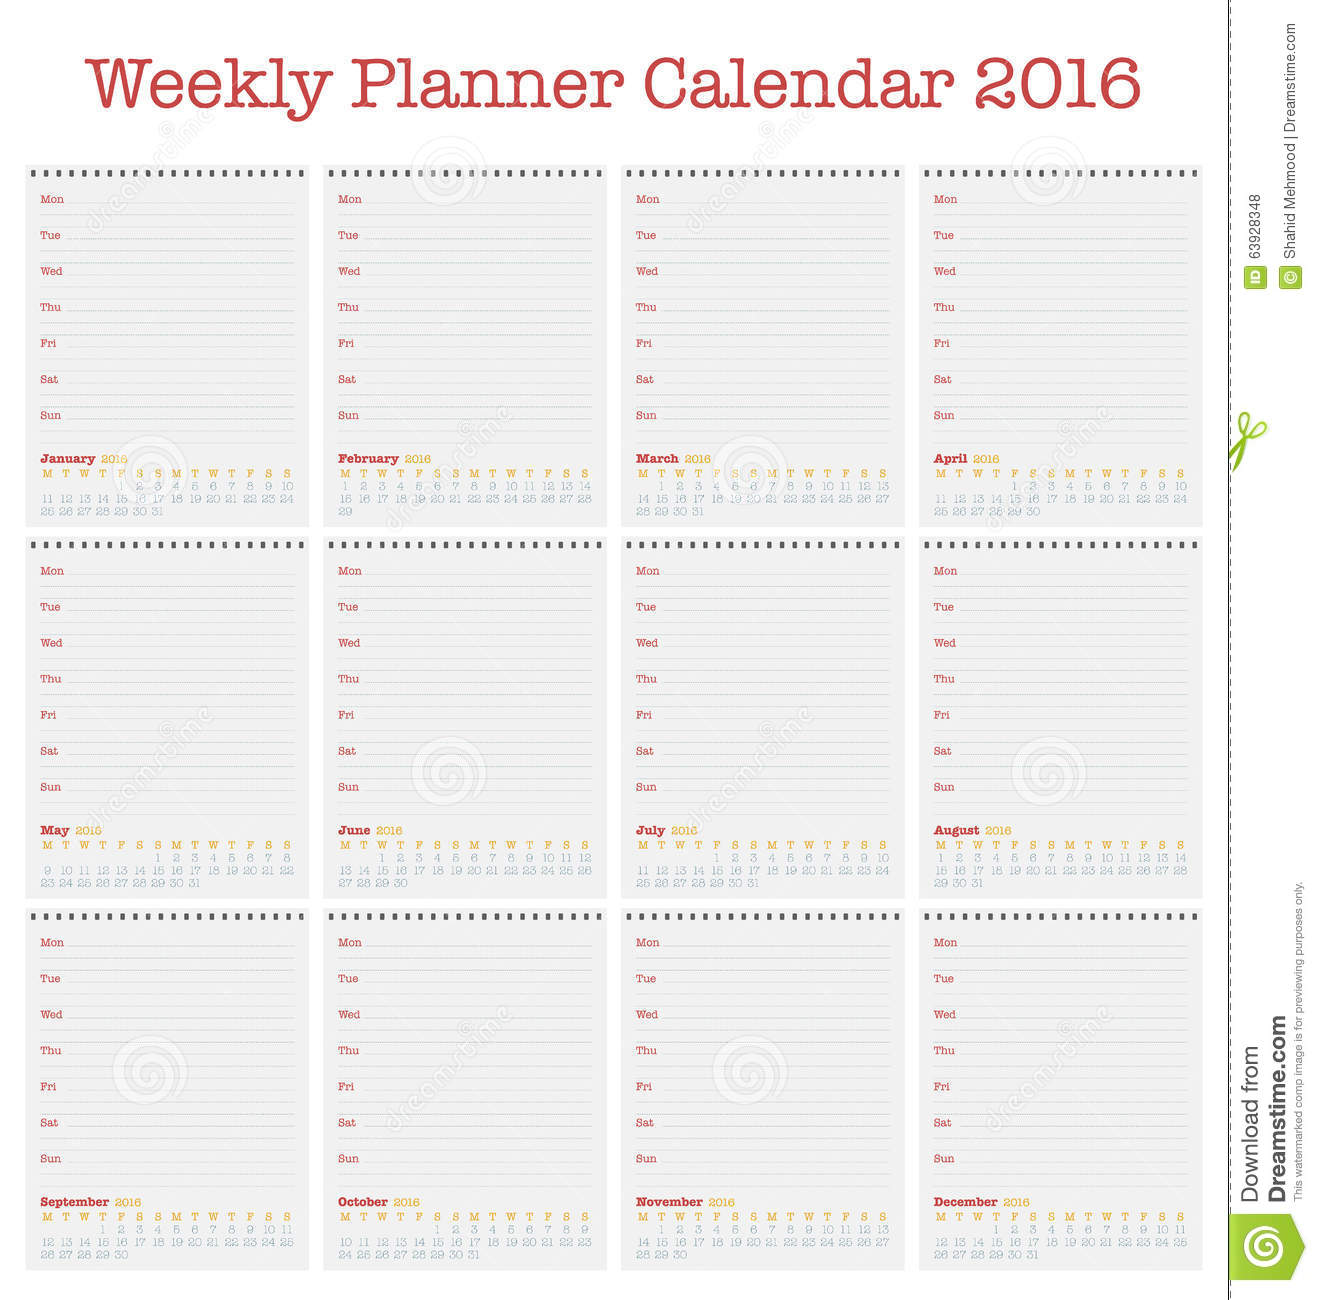 Weekly Calendar Vector : Calendar for weekly planner year stock